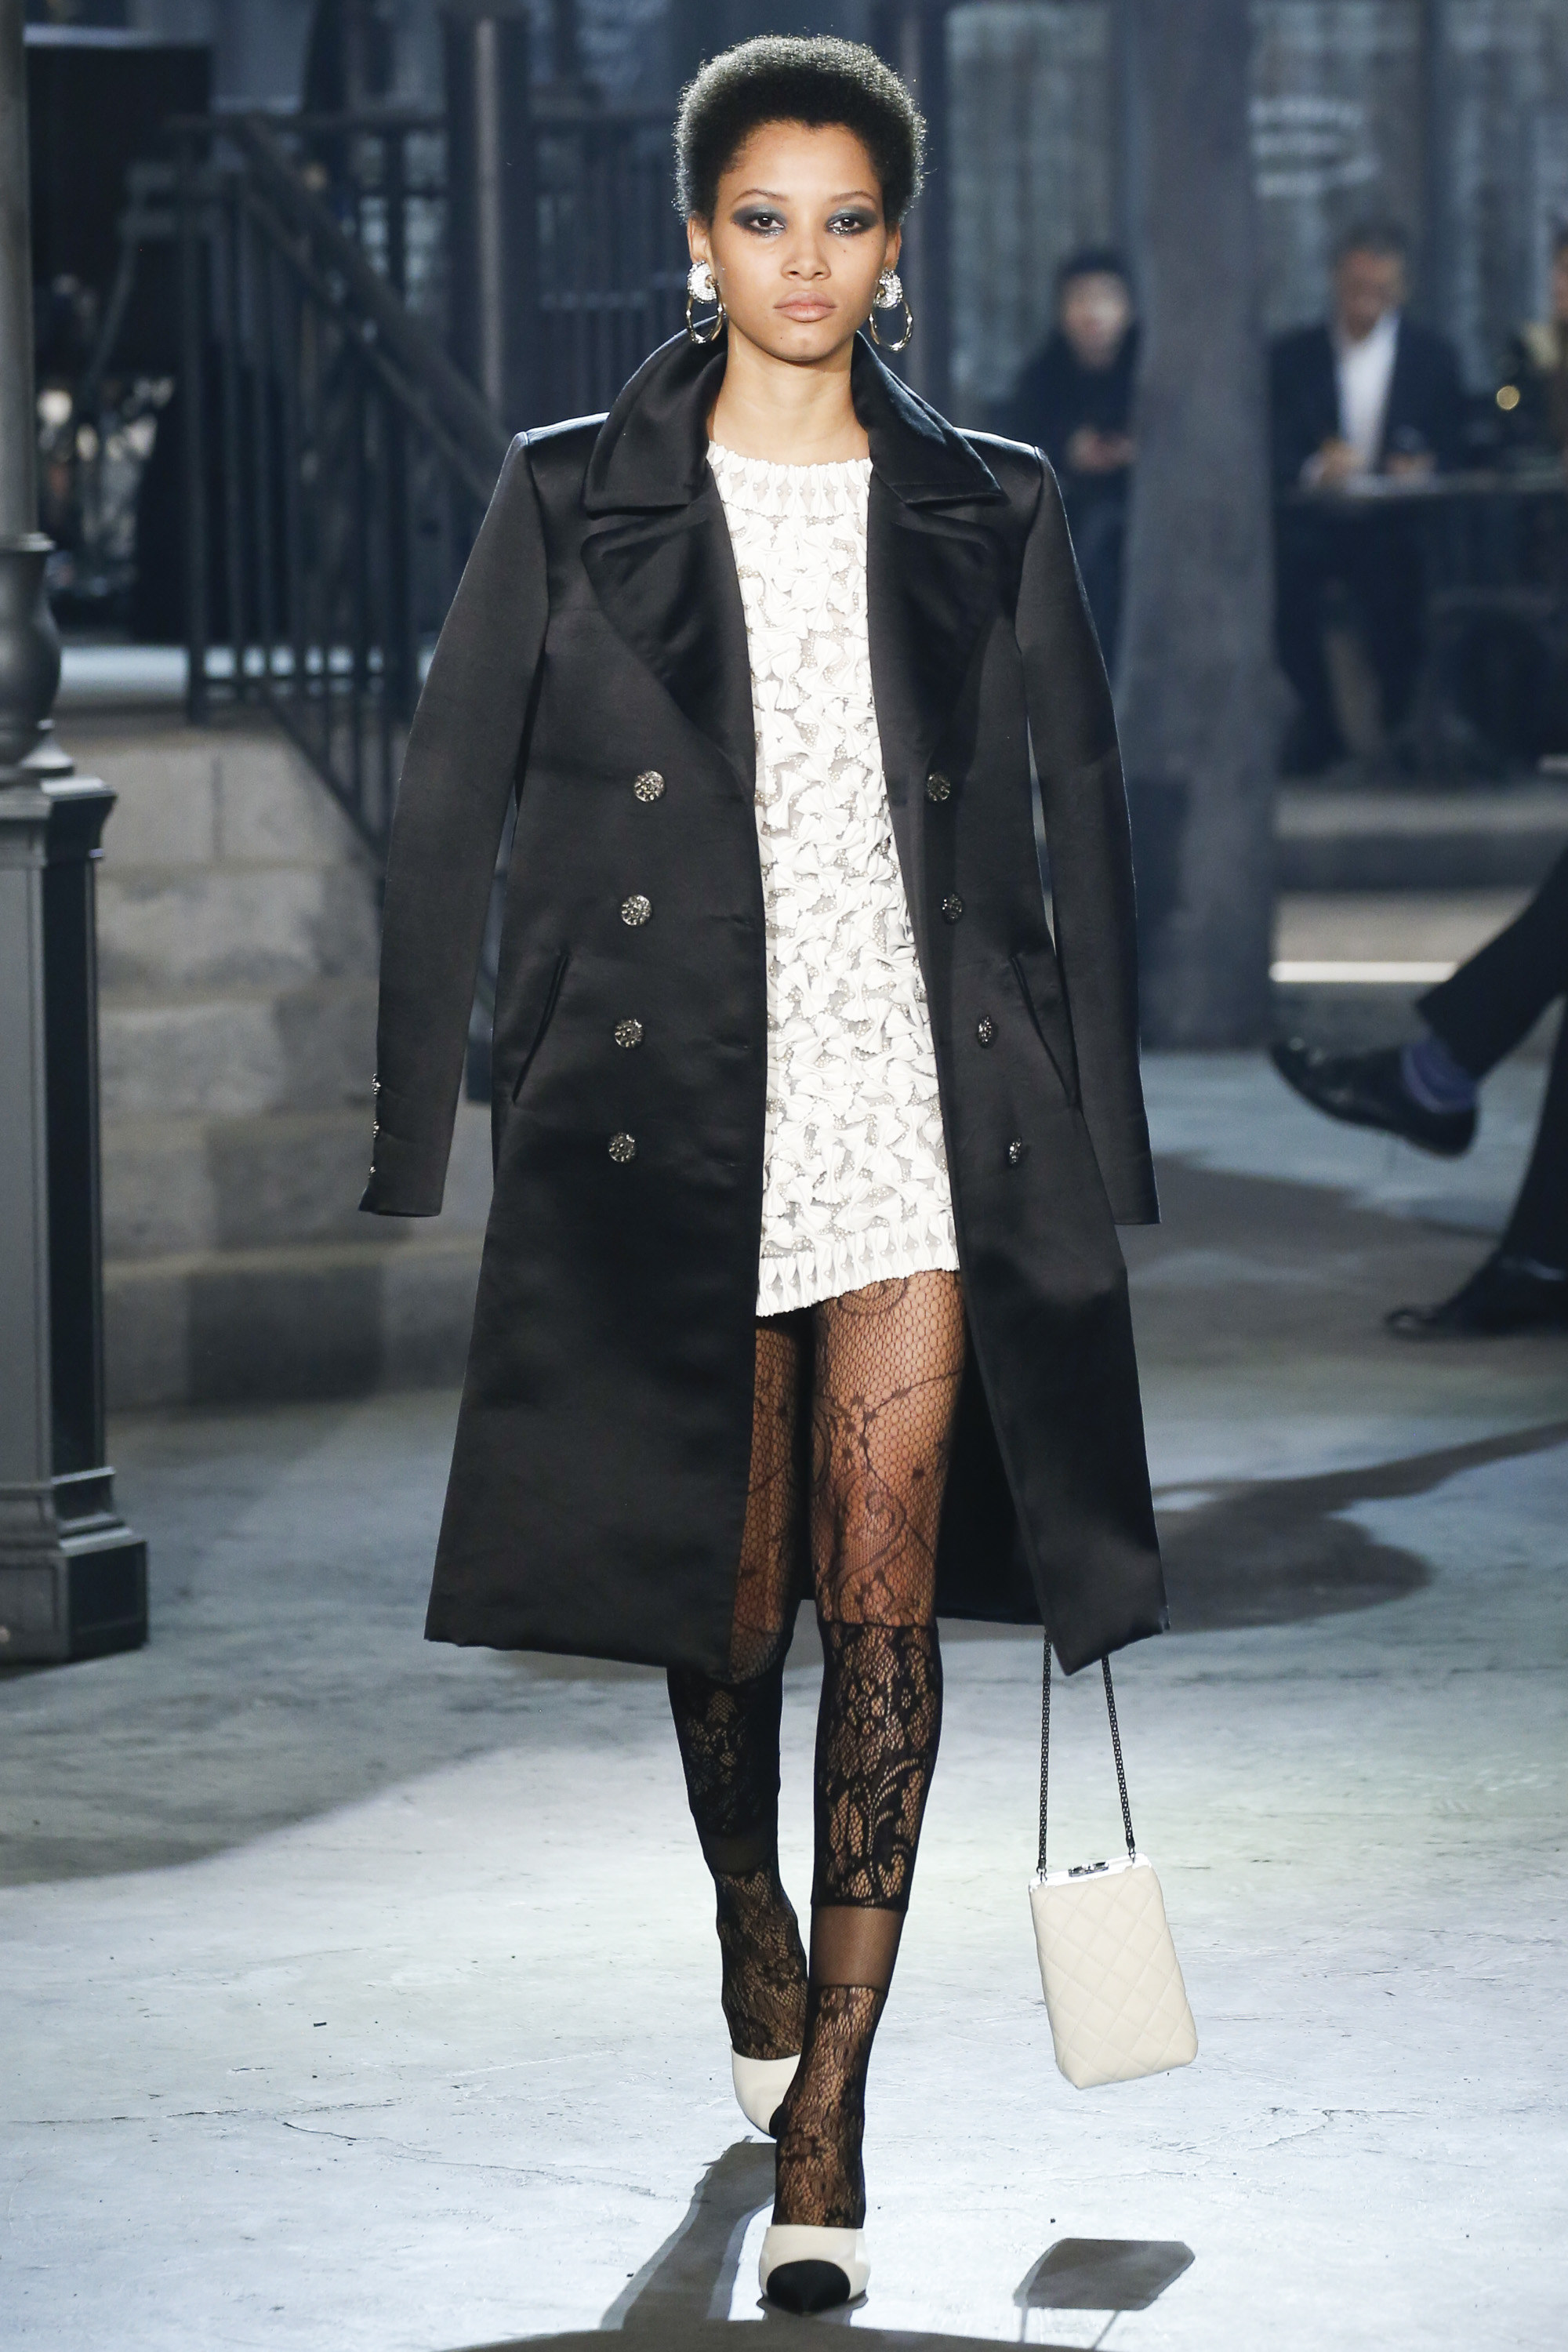 http://www.vogue.com/fashion-shows/pre-fall-2016/chanel/slideshow/collection#5